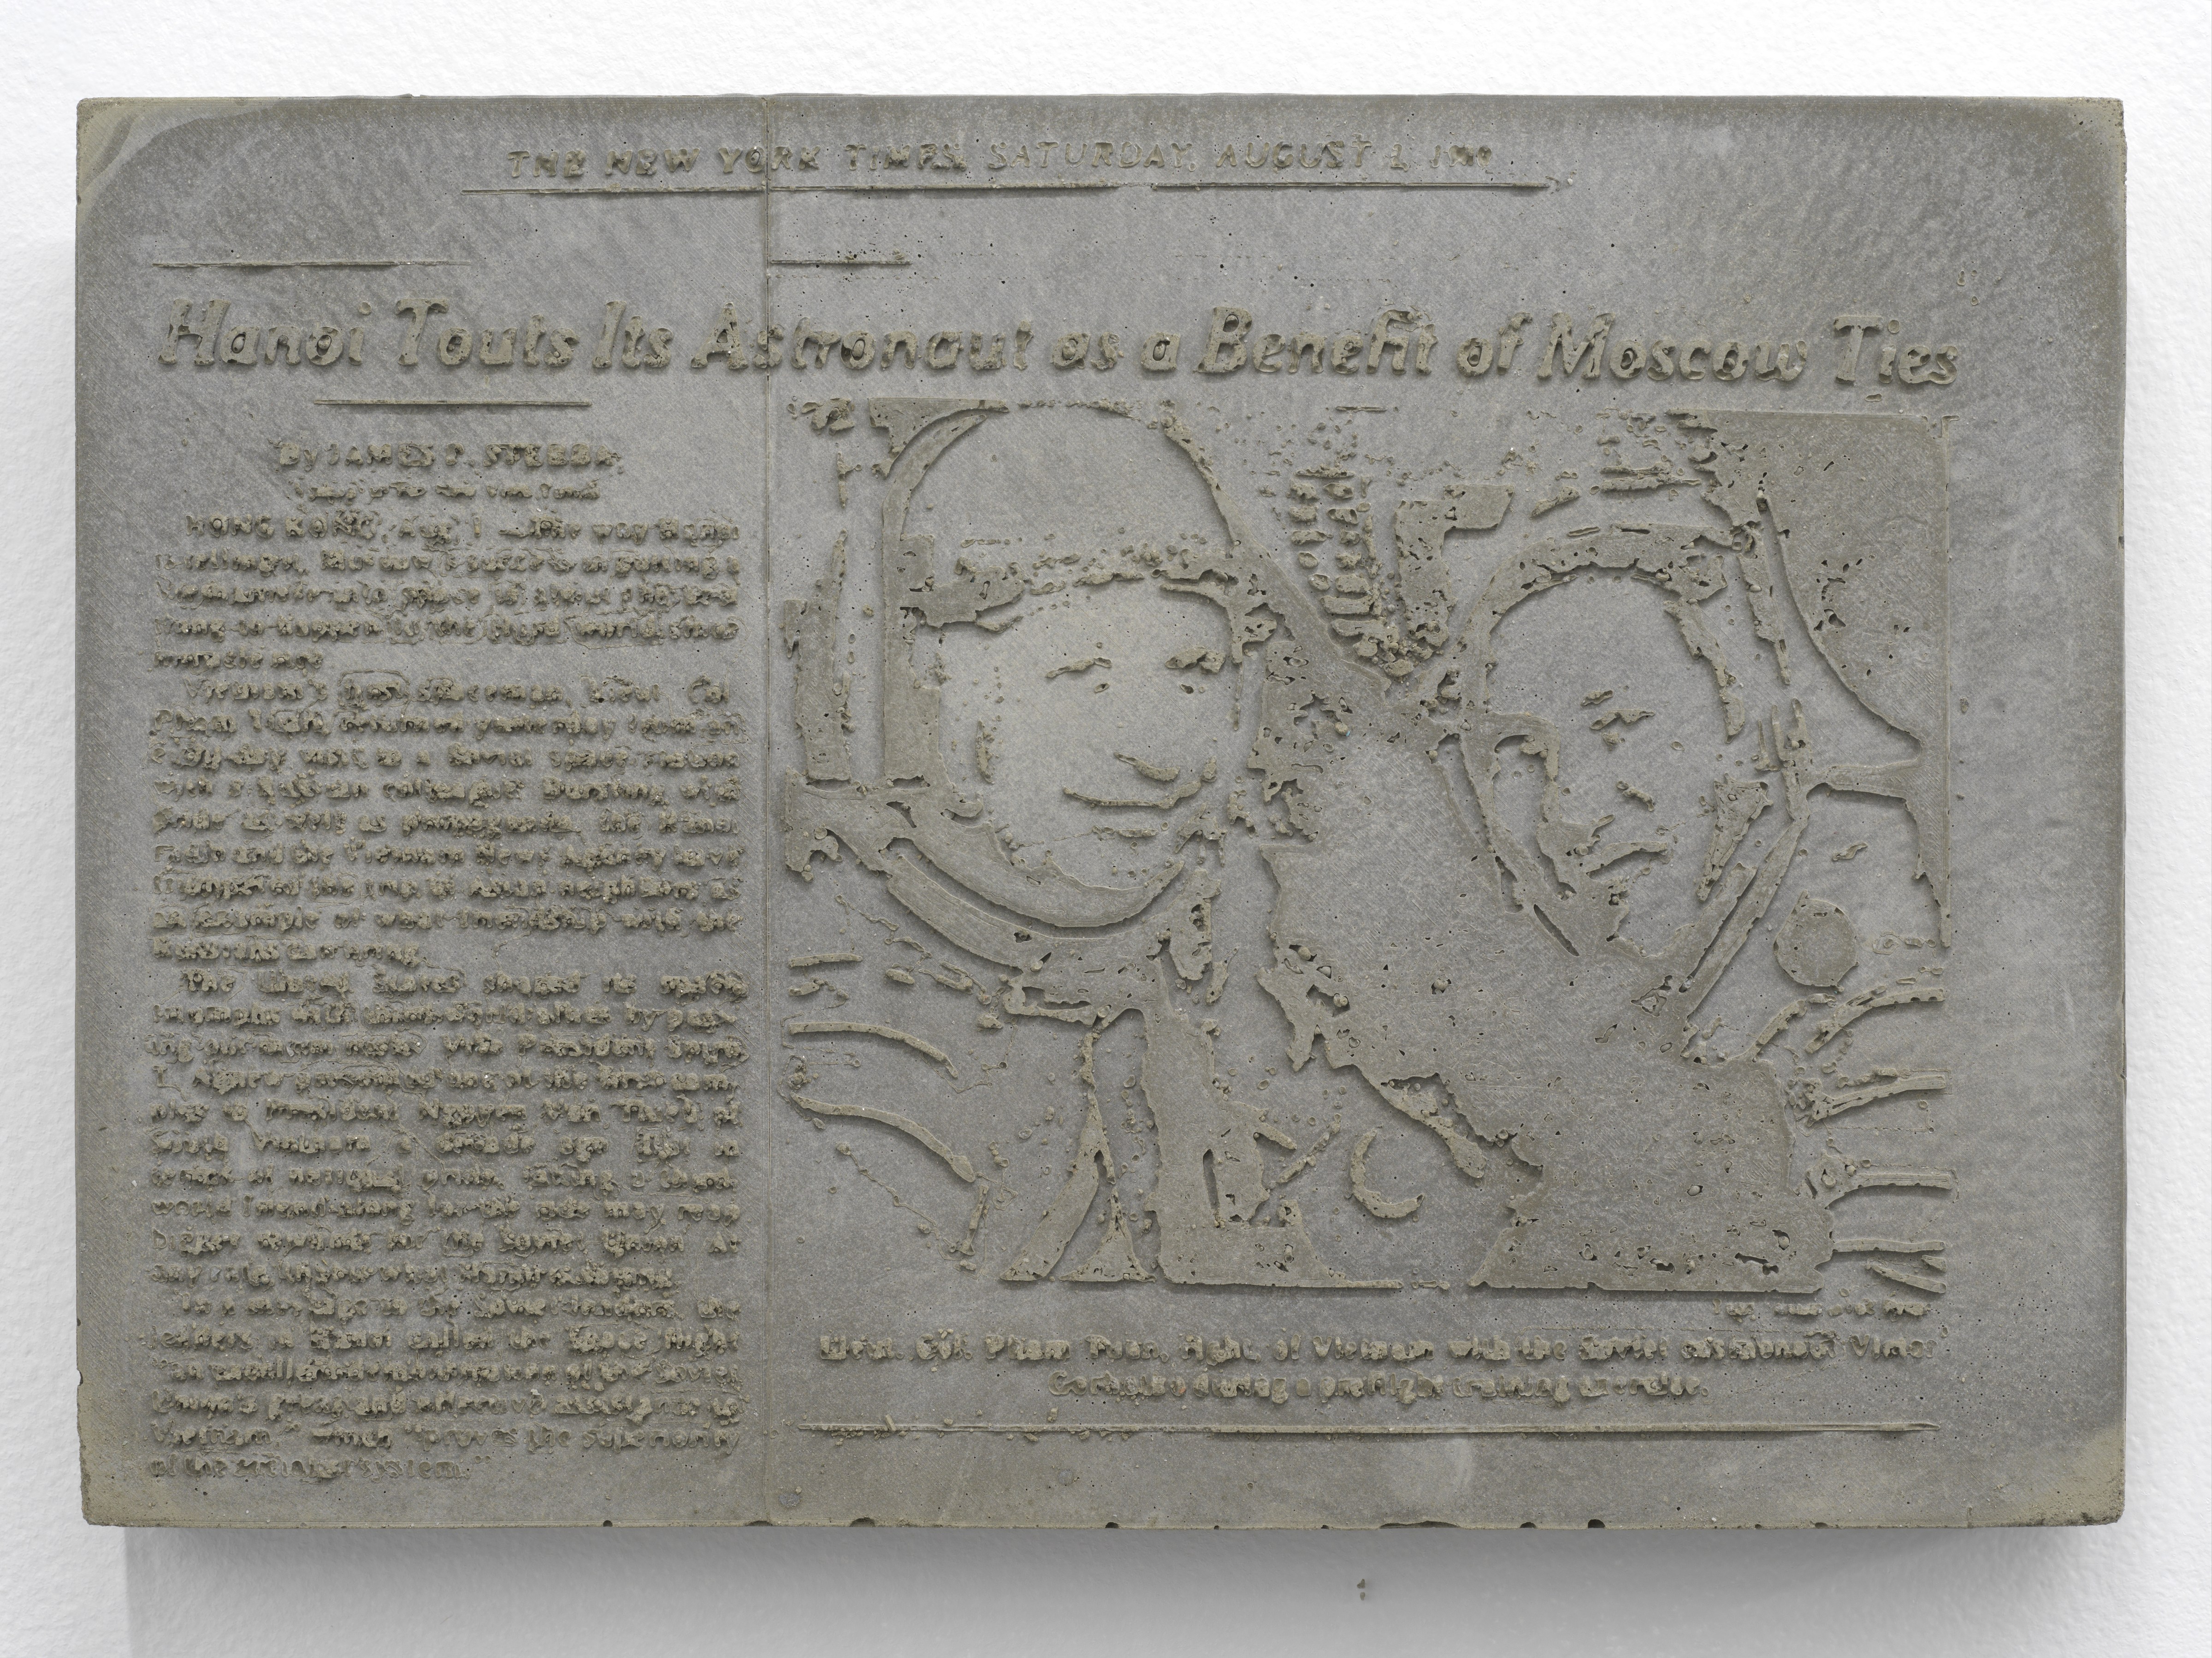 "Image: Photo of a newspaper article from the New York Times cast in concrete. The headline reads, ""Hanoi touts its astronaut as a benefit of Moscow ties,"" The article shows an image of two astronauts wearing space suits and smiling. Image courtesy of the artist."